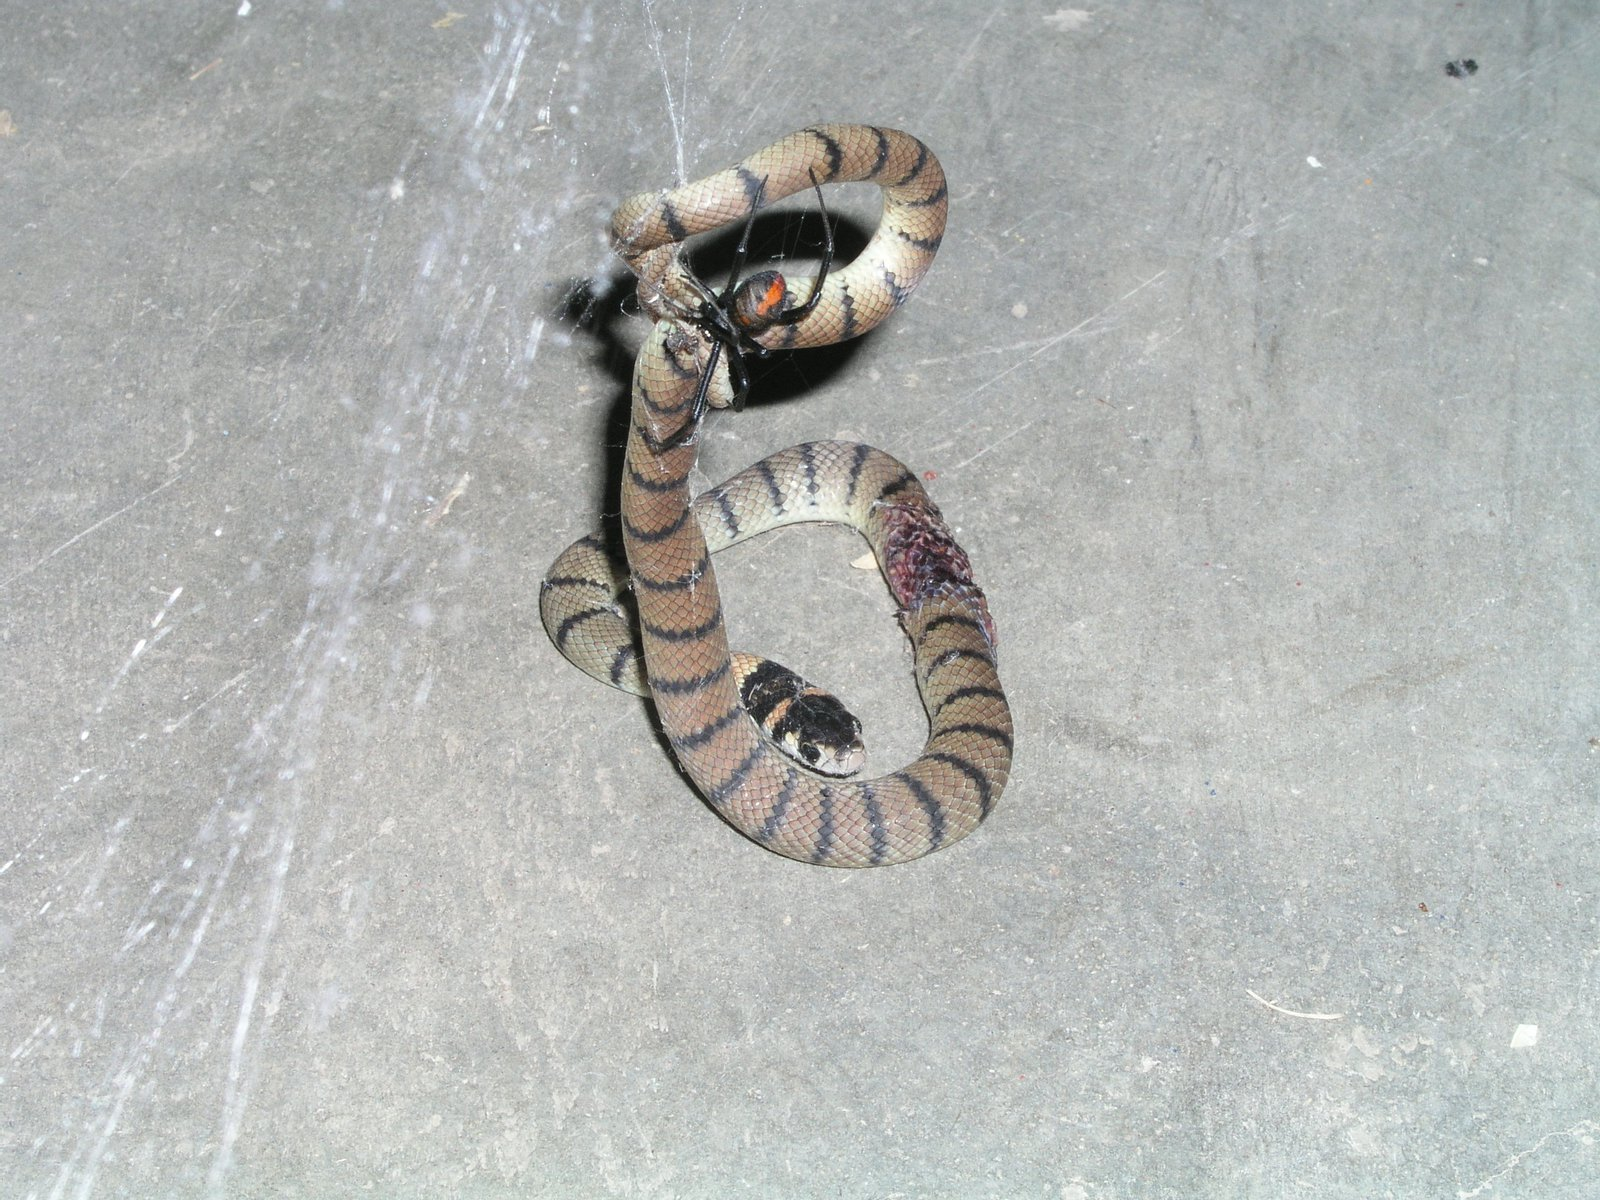 Juvenile Eastern brown snake with redback spider bite lesion.